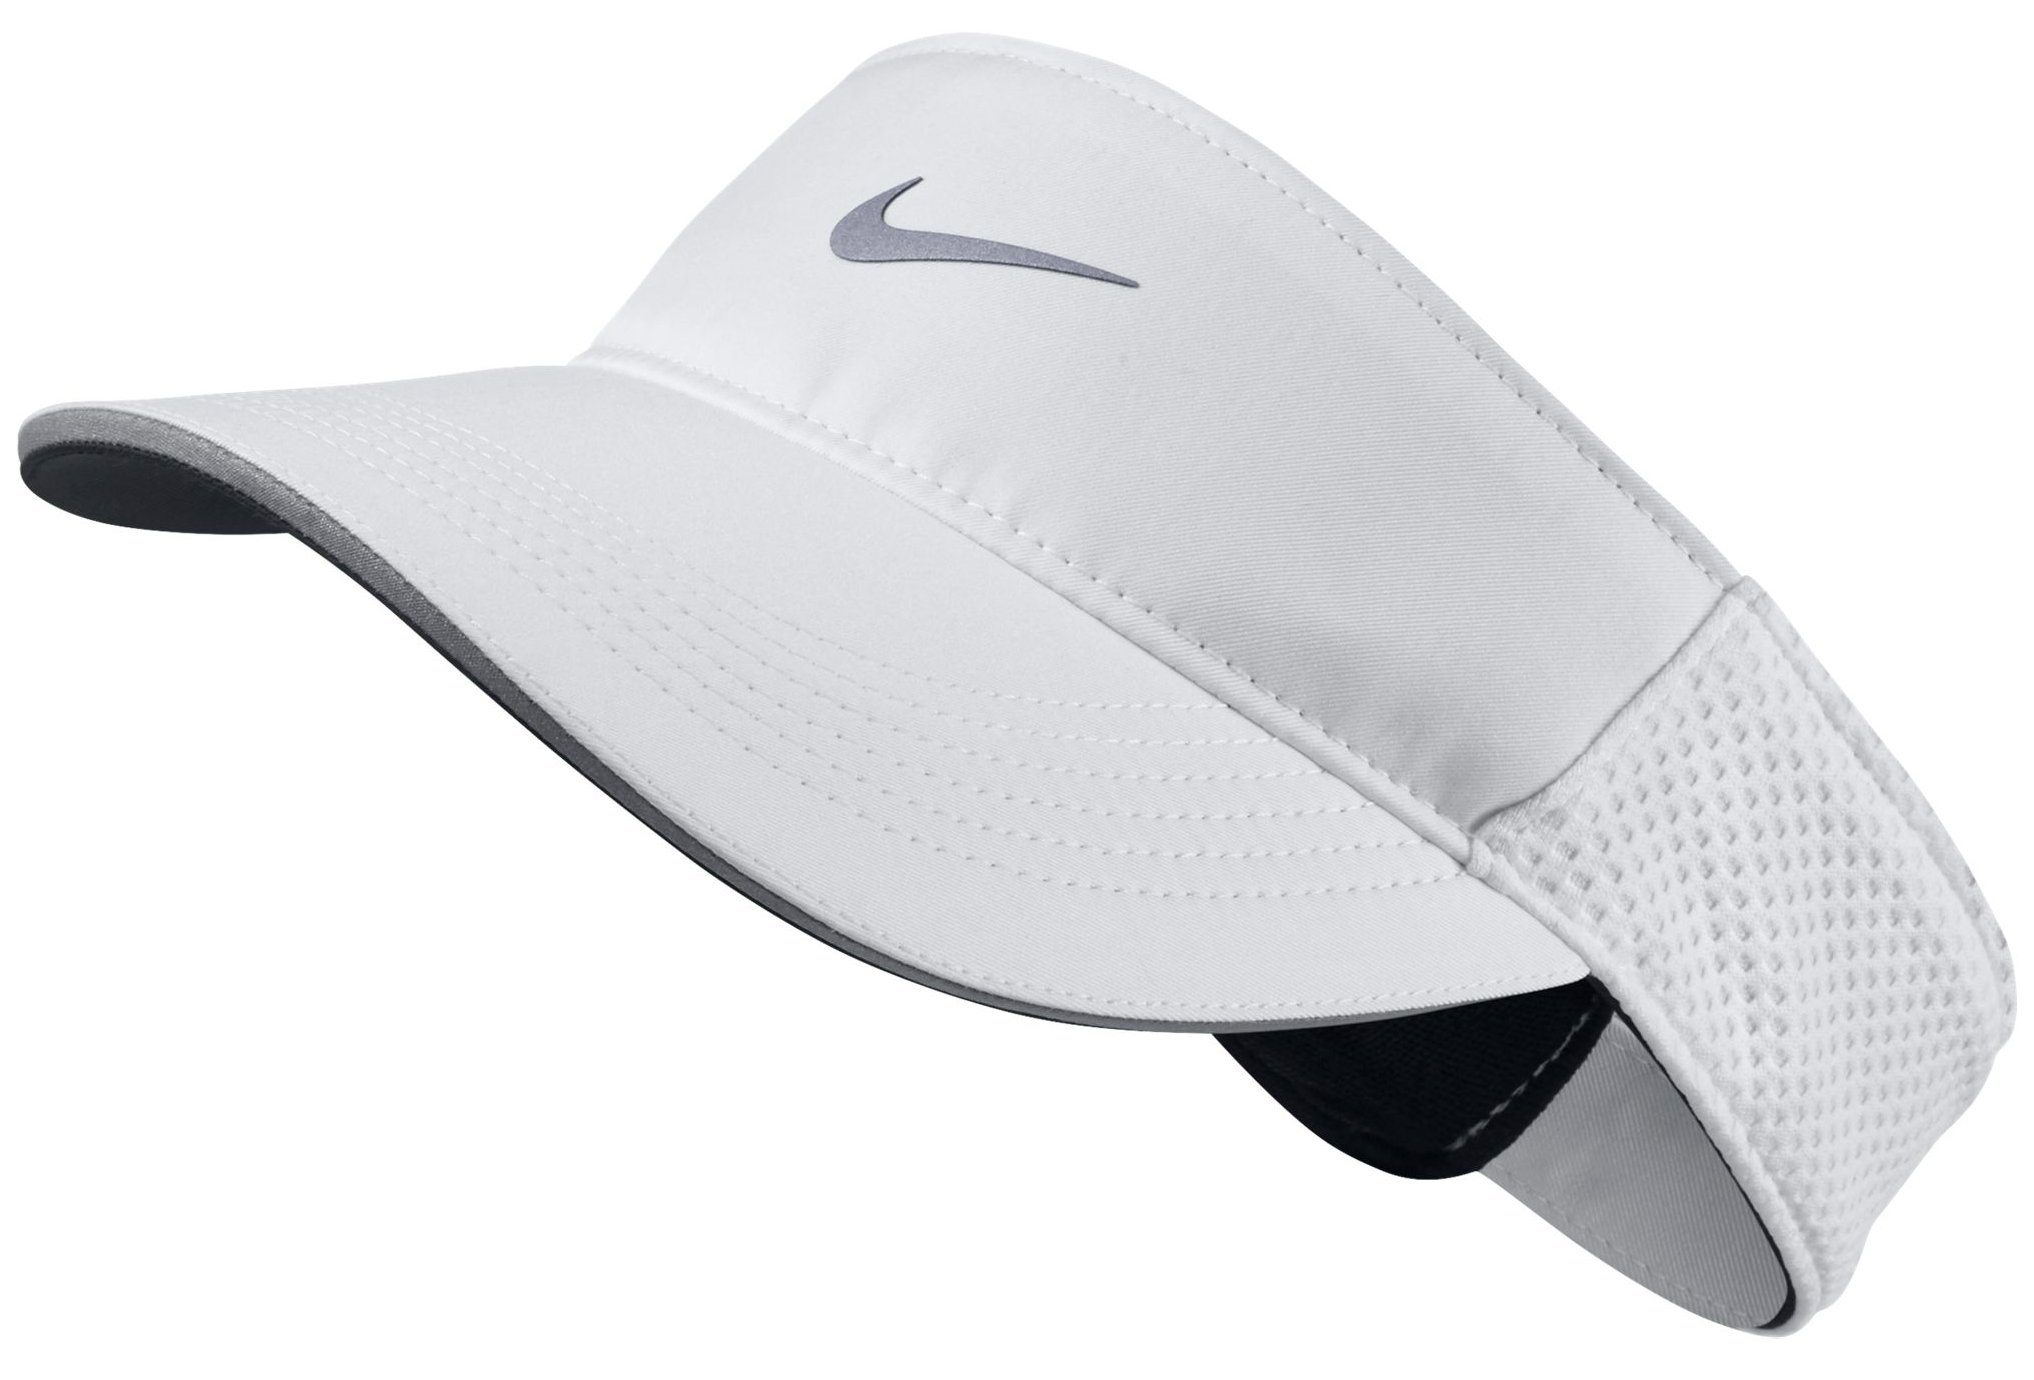 Nike Aerobill visor casquettes / bandeaux